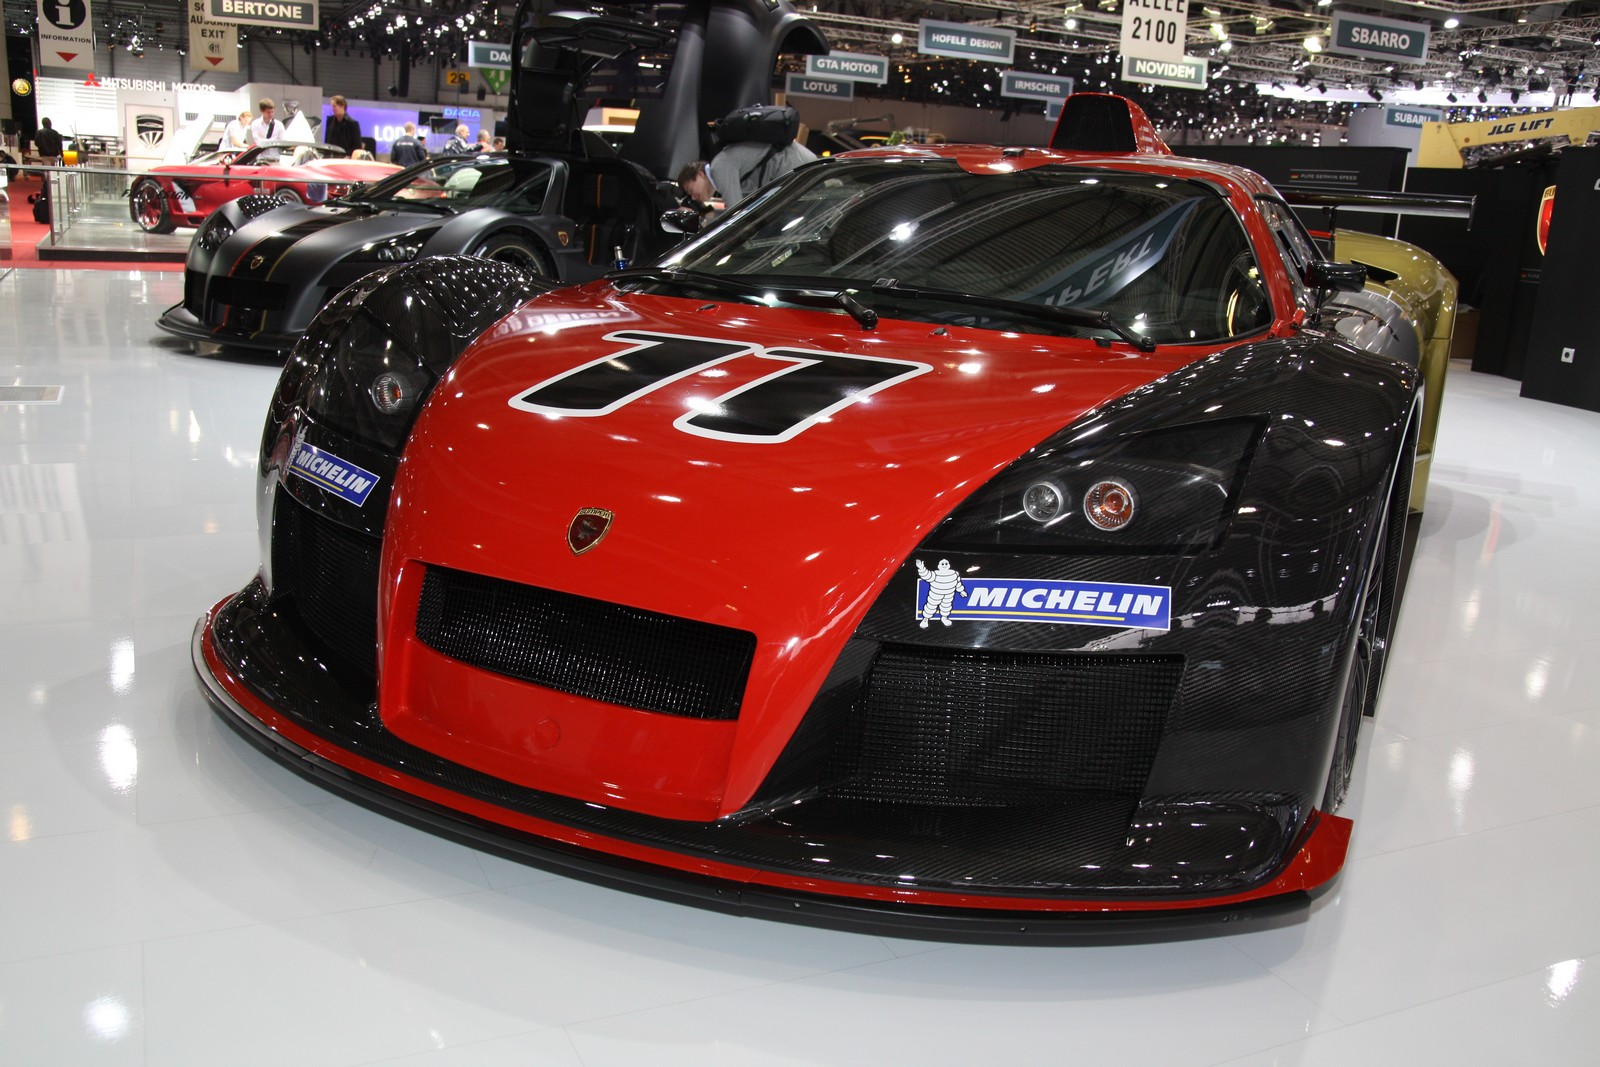 2012 Gumpert Apollo R Top Speed